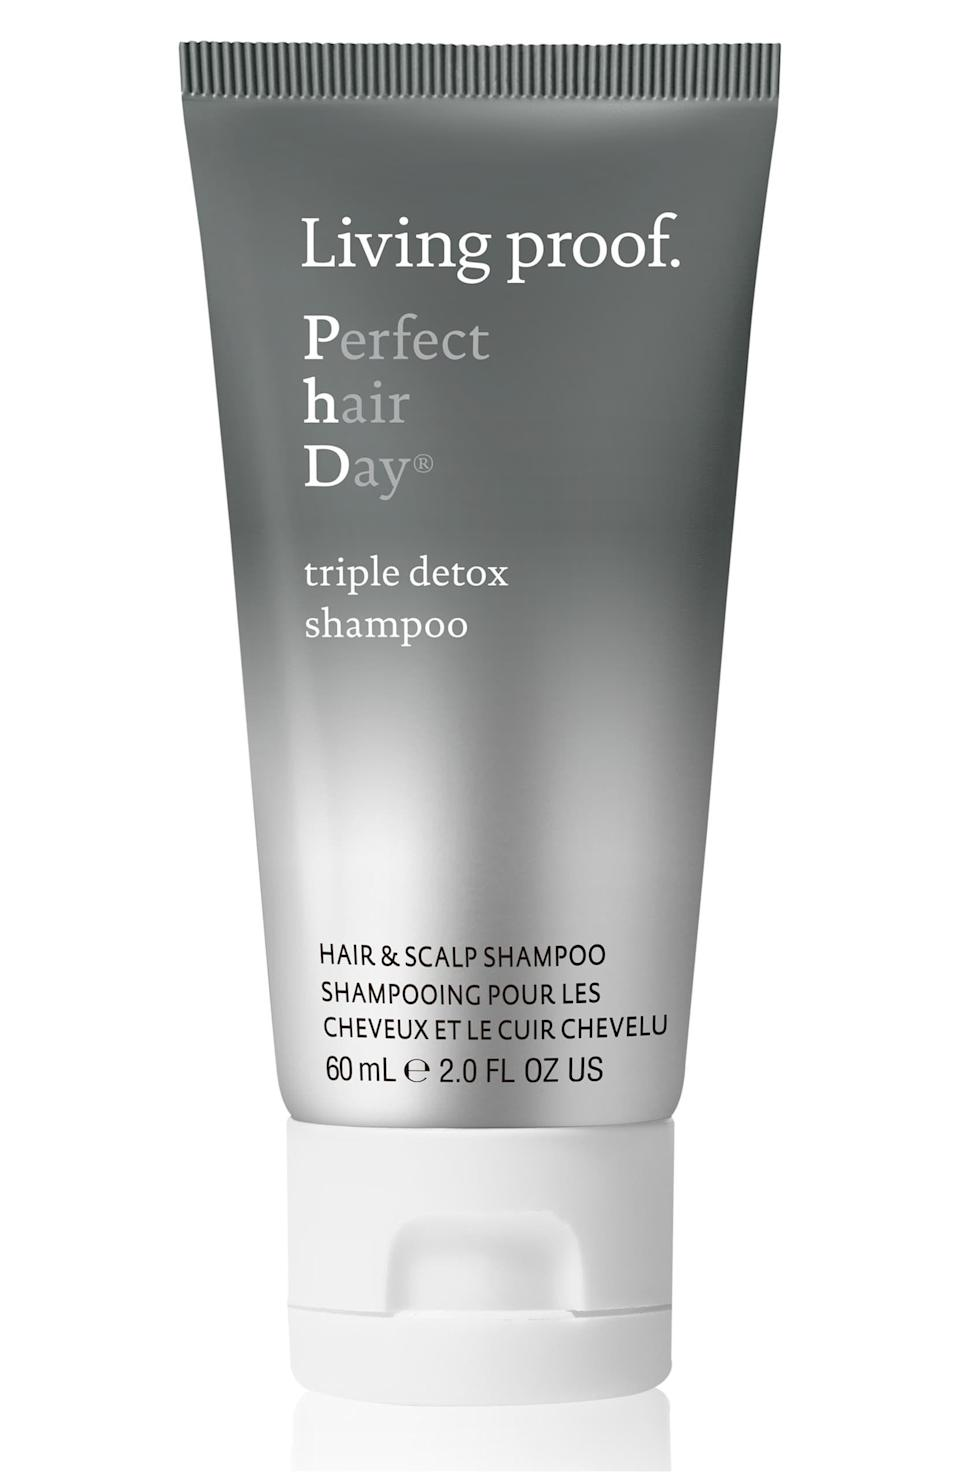 """<p><strong>Living Proof</strong></p><p>sephora.com</p><p><strong>$29.00</strong></p><p><a href=""""https://go.redirectingat.com?id=74968X1596630&url=https%3A%2F%2Fwww.sephora.com%2Fproduct%2Fperfect-hair-day-phd-triple-detox-shampoo-P440977&sref=https%3A%2F%2Fwww.harpersbazaar.com%2Fbeauty%2Fhair%2Fg24892831%2Fbest-sulfate-free-shampoos%2F"""" rel=""""nofollow noopener"""" target=""""_blank"""" data-ylk=""""slk:Shop Now"""" class=""""link rapid-noclick-resp"""">Shop Now</a></p><p>The activated charcoal in this high-tech shampoo helps draw out buildup from pollution and other hair products, so hair feels clean but not stripped.</p>"""